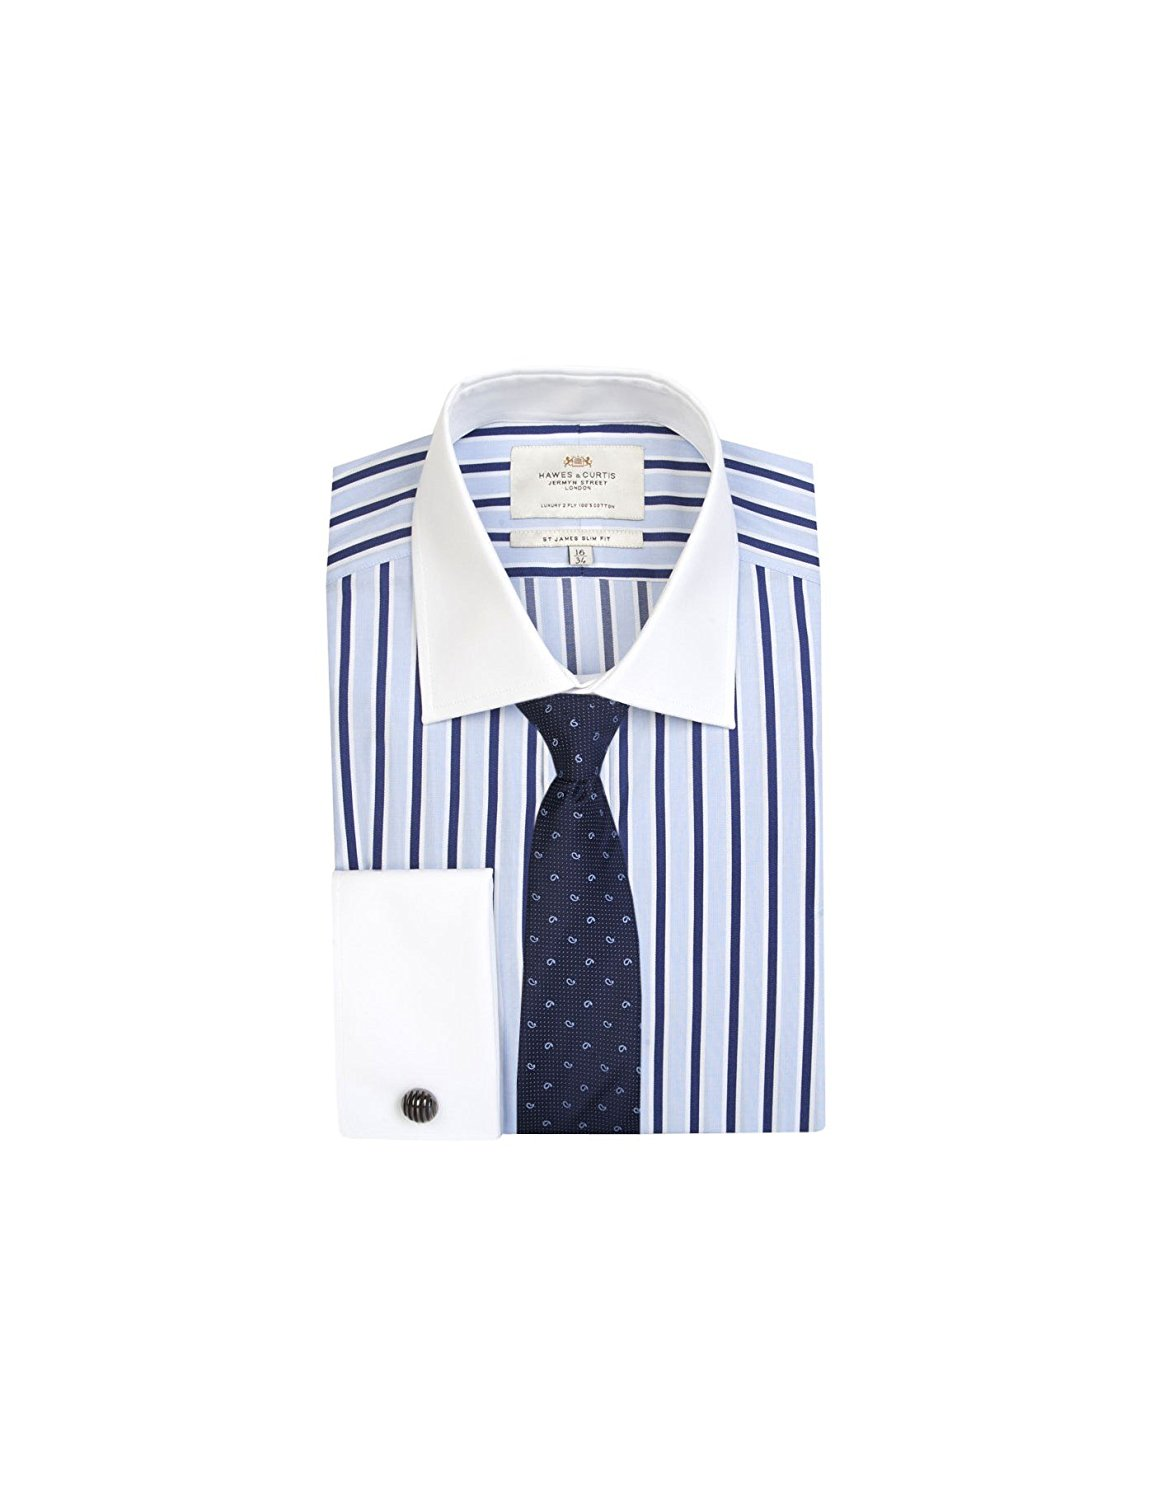 078326d87b Get Quotations · HAWES & CURTIS Mens Blue & Navy Multi Stripe Slim Fit Shirt  With White Collar&Cuff -